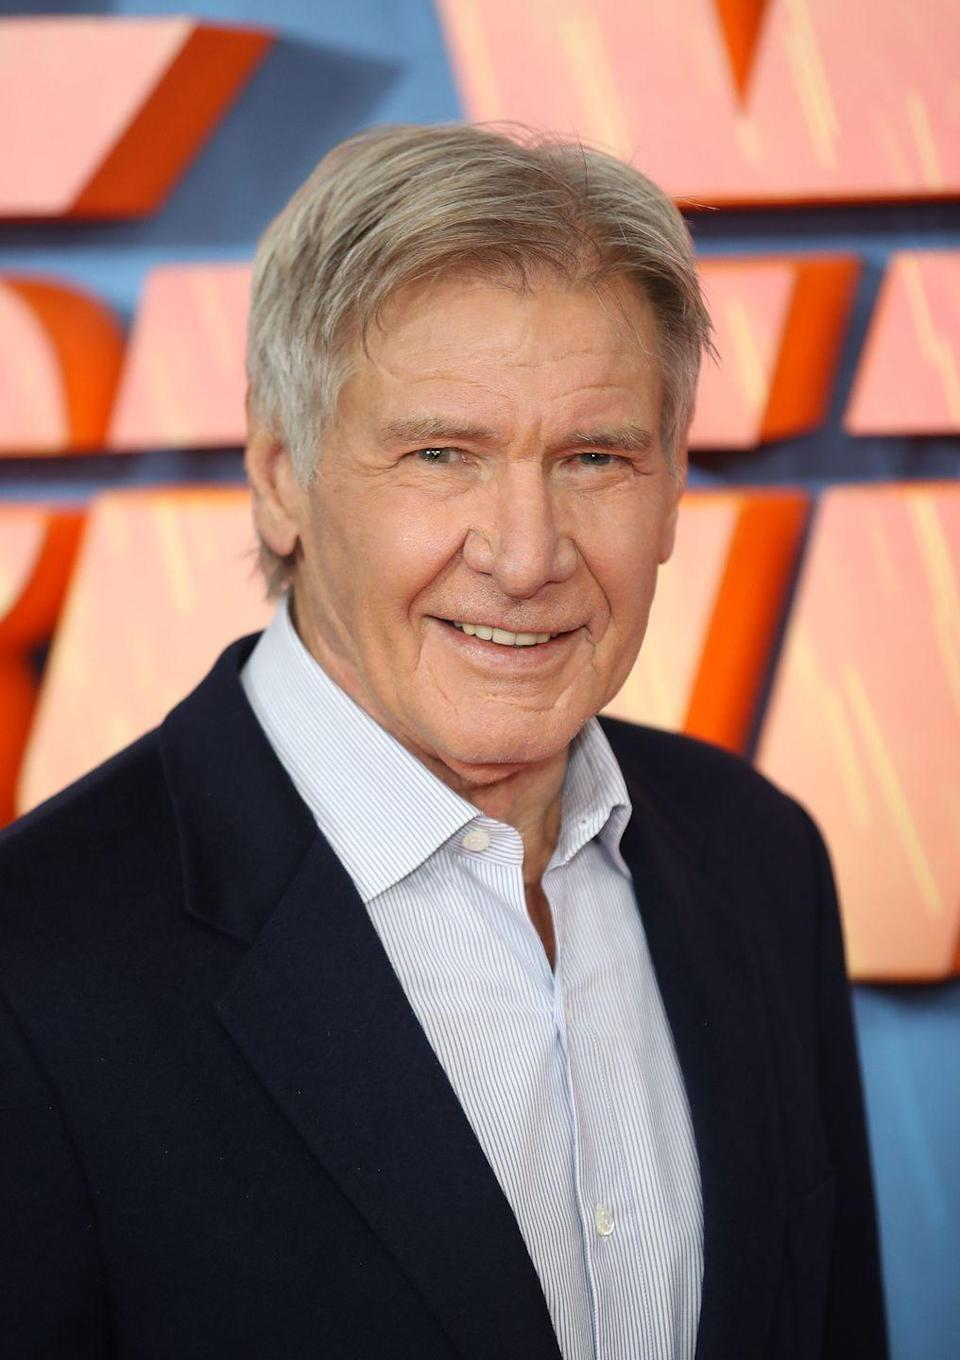 <p>Since those two iconic franchises, Harrison hasn't slowed down. He's lent his voice to <em>The Secret Life of Pets 2 </em>(2019) and in 2017 he starred in <em>The Blade Runner 2049</em><em>.</em> He's also made cameos in the new <em>Star Wars</em> films, because everyone loves a fan favorite.</p>